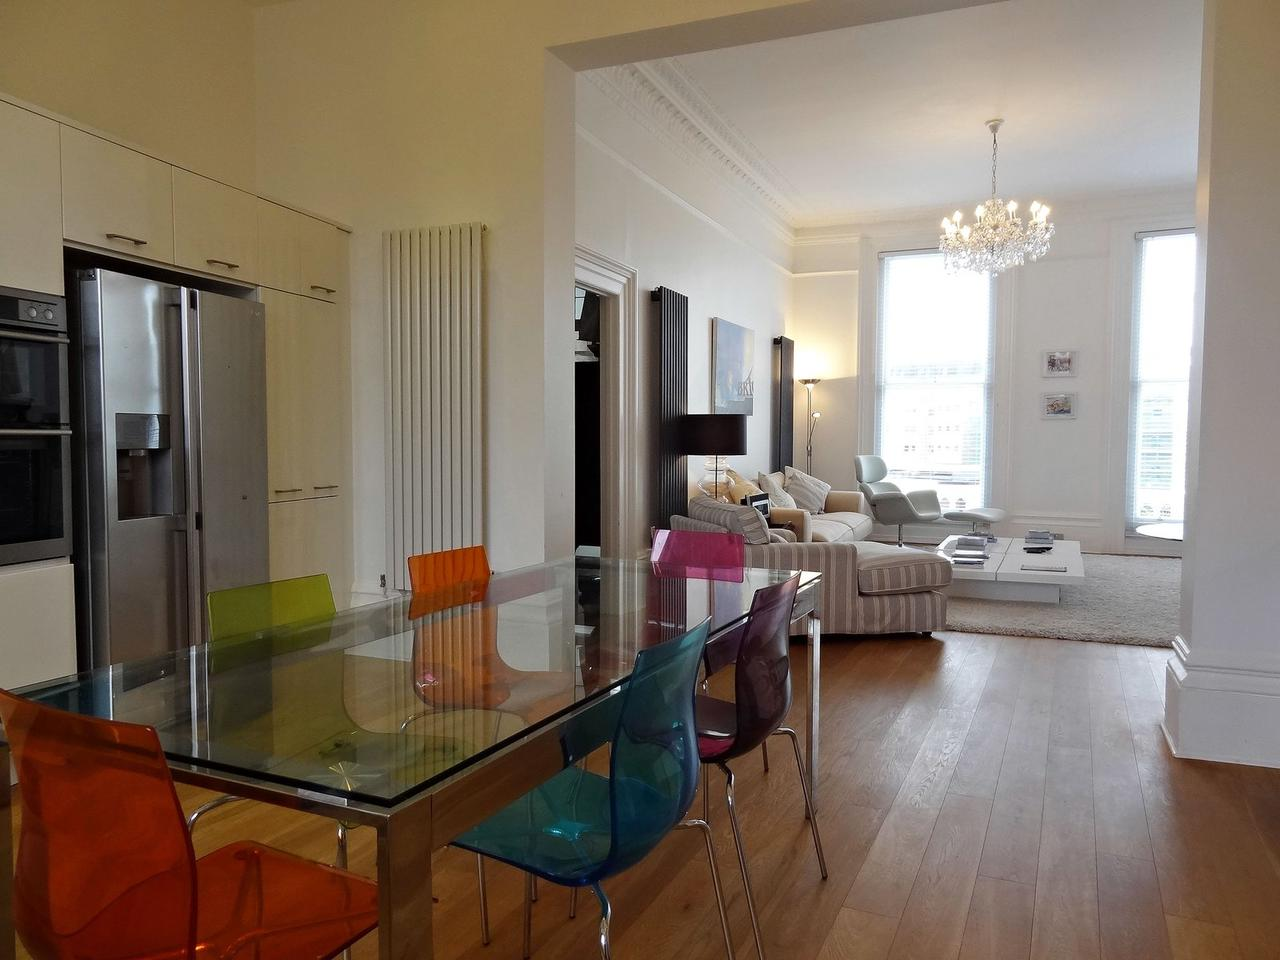 The Grand Seafront Apartment, Brighton & Hove Images - 3